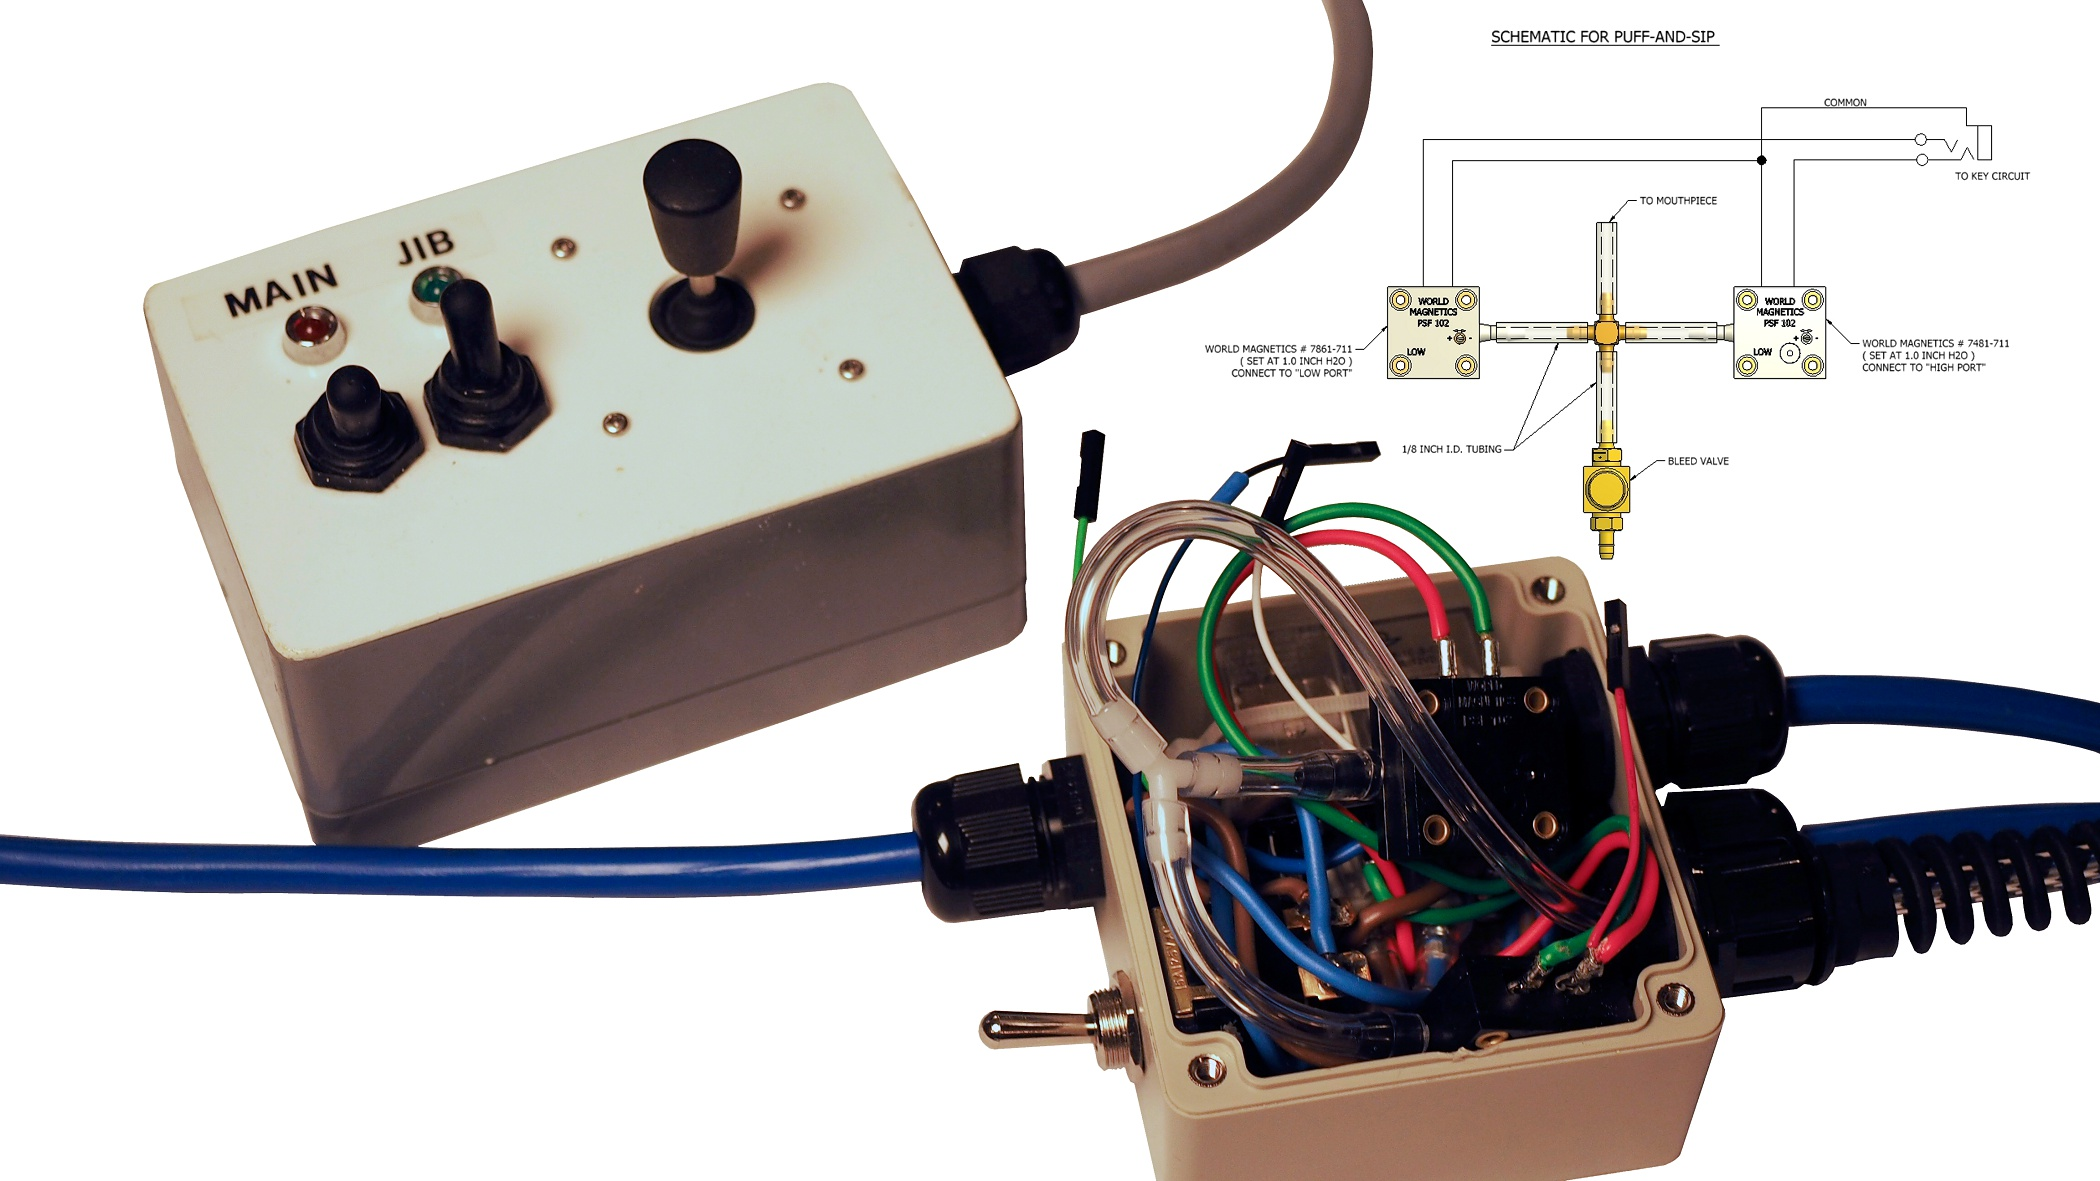 Sip and Puff pressure switch controller